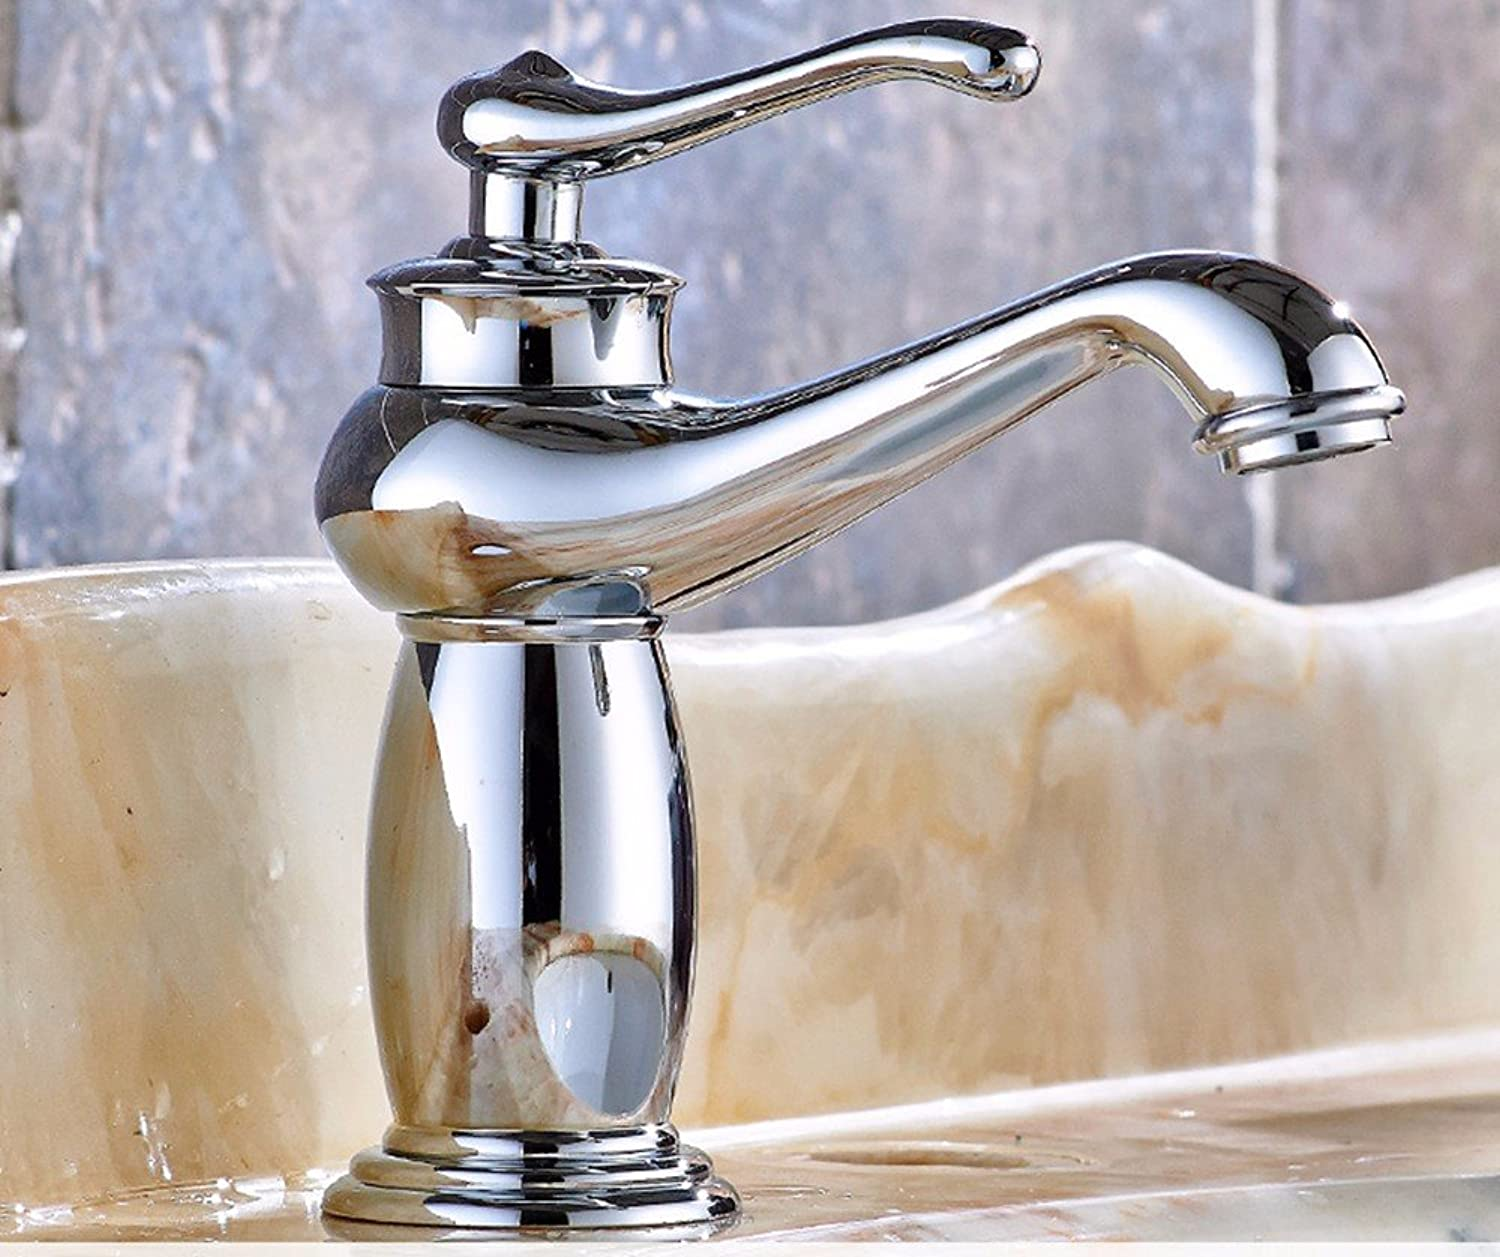 AWXJX European style retro style copper basin hot and cold Swivel Chrome Plated water taps